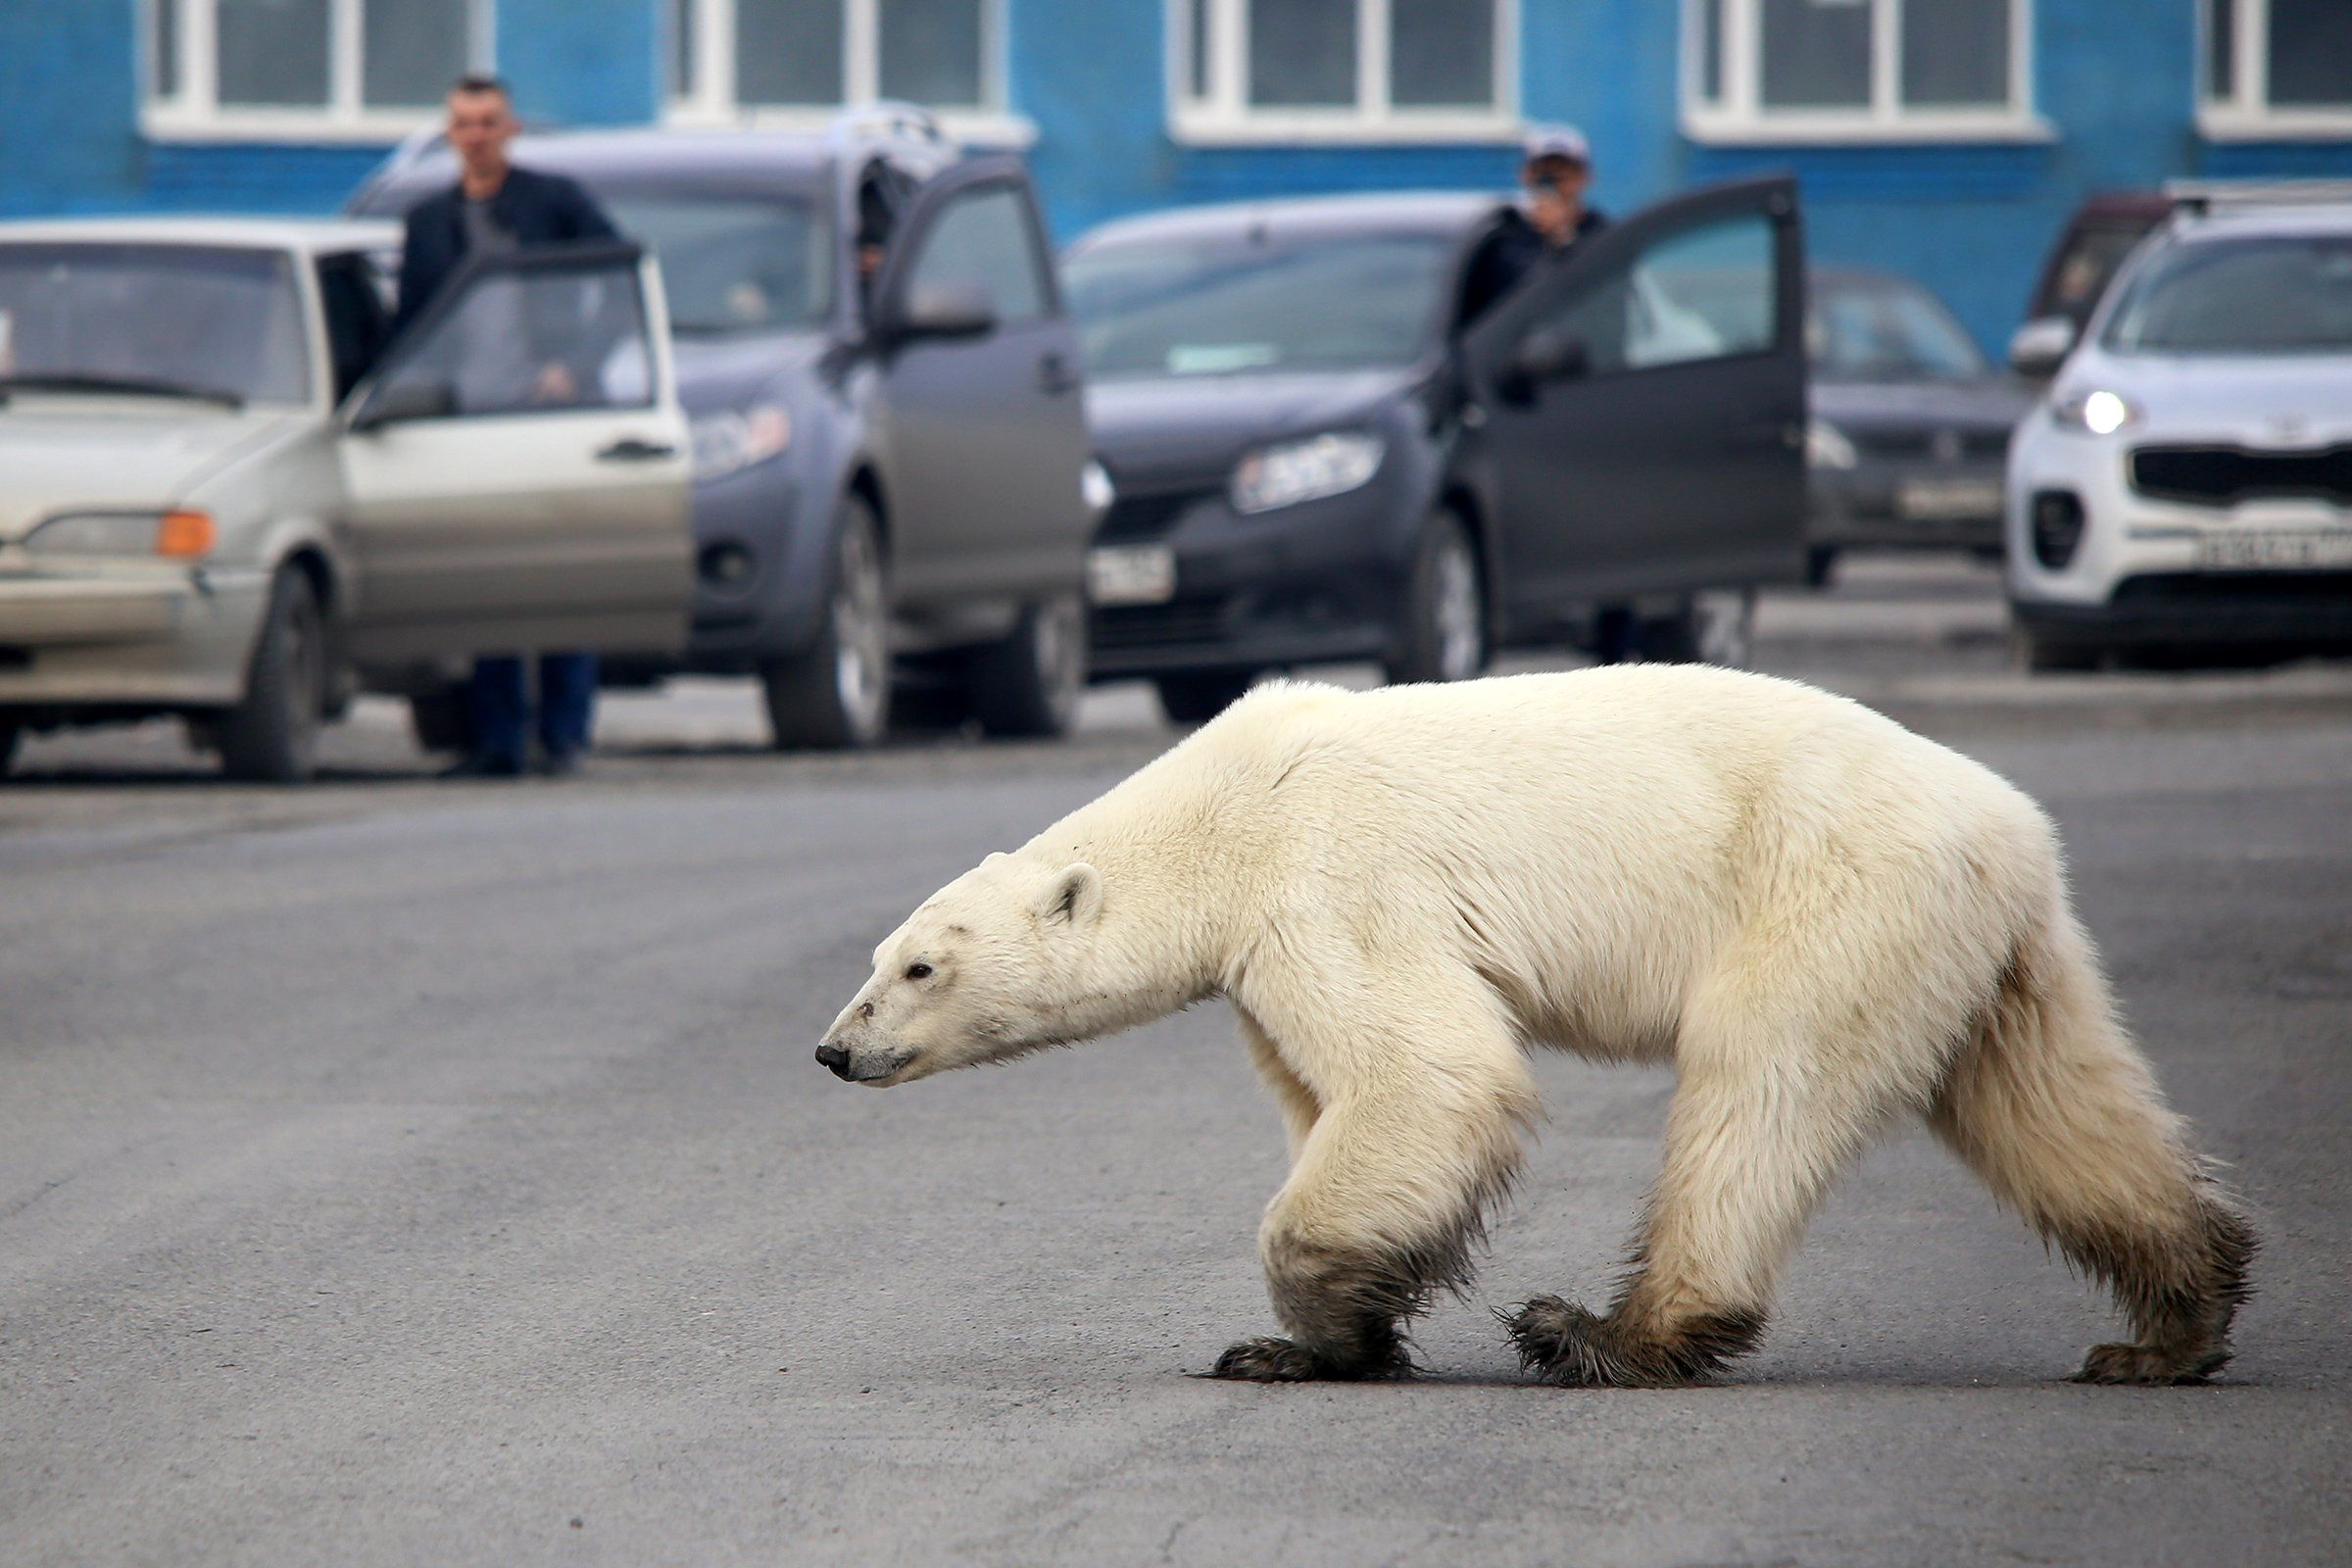 A stray polar bear walks on a road on the outskirts of the Russian industrial city of Norilsk in June. The hungry bear was said to be hundreds of miles from its natural habitat.